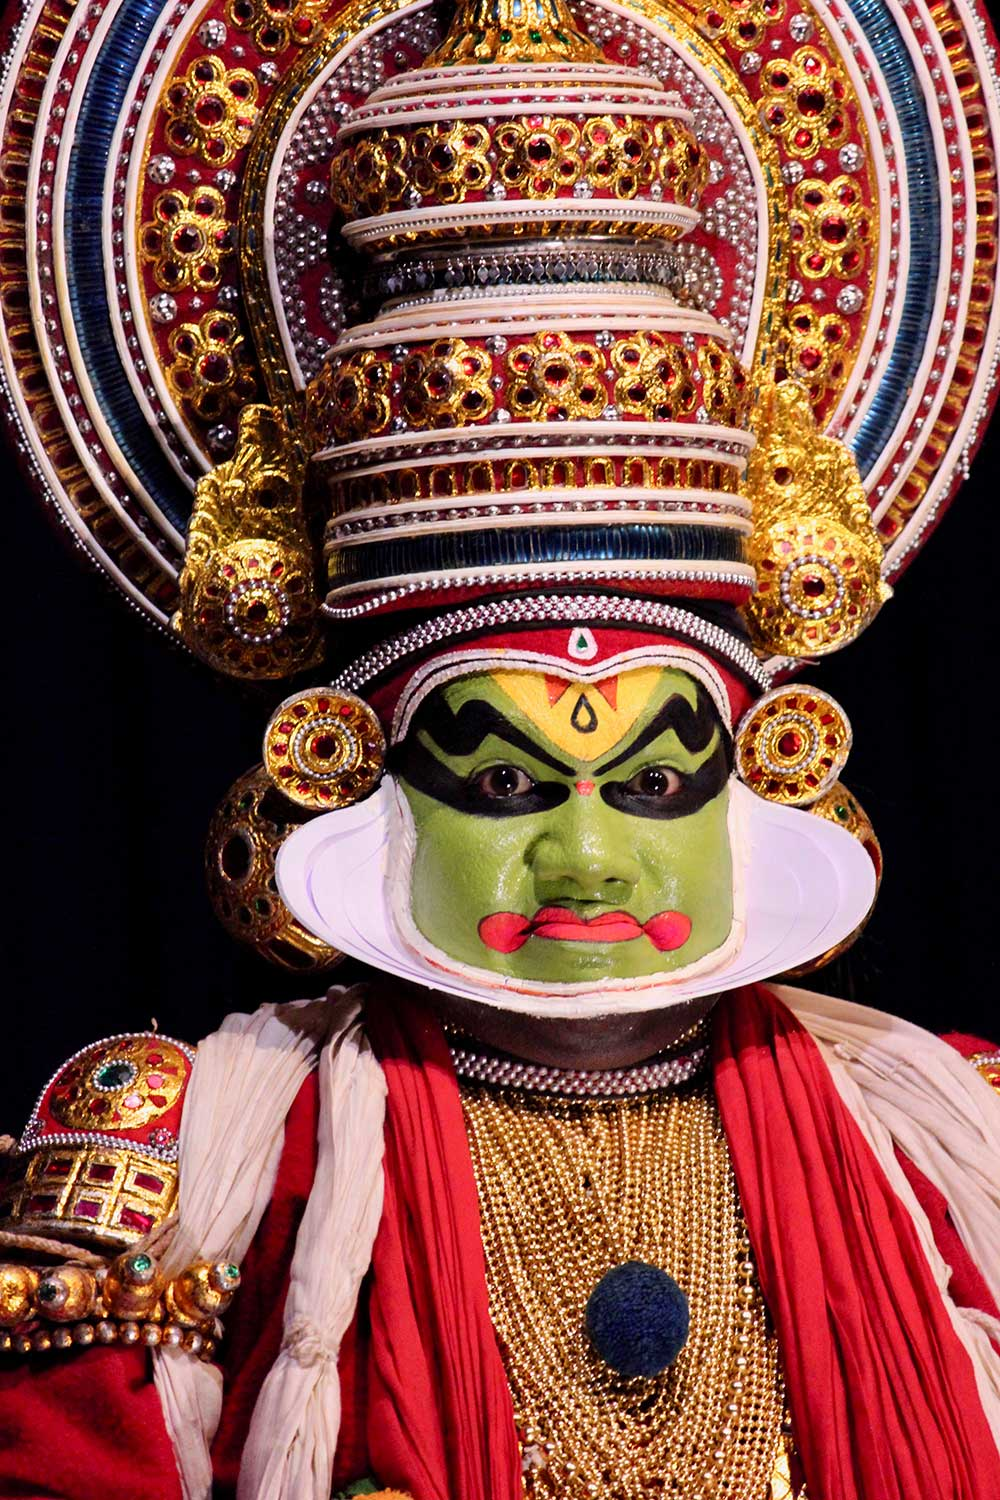 A Kathakali performer in India